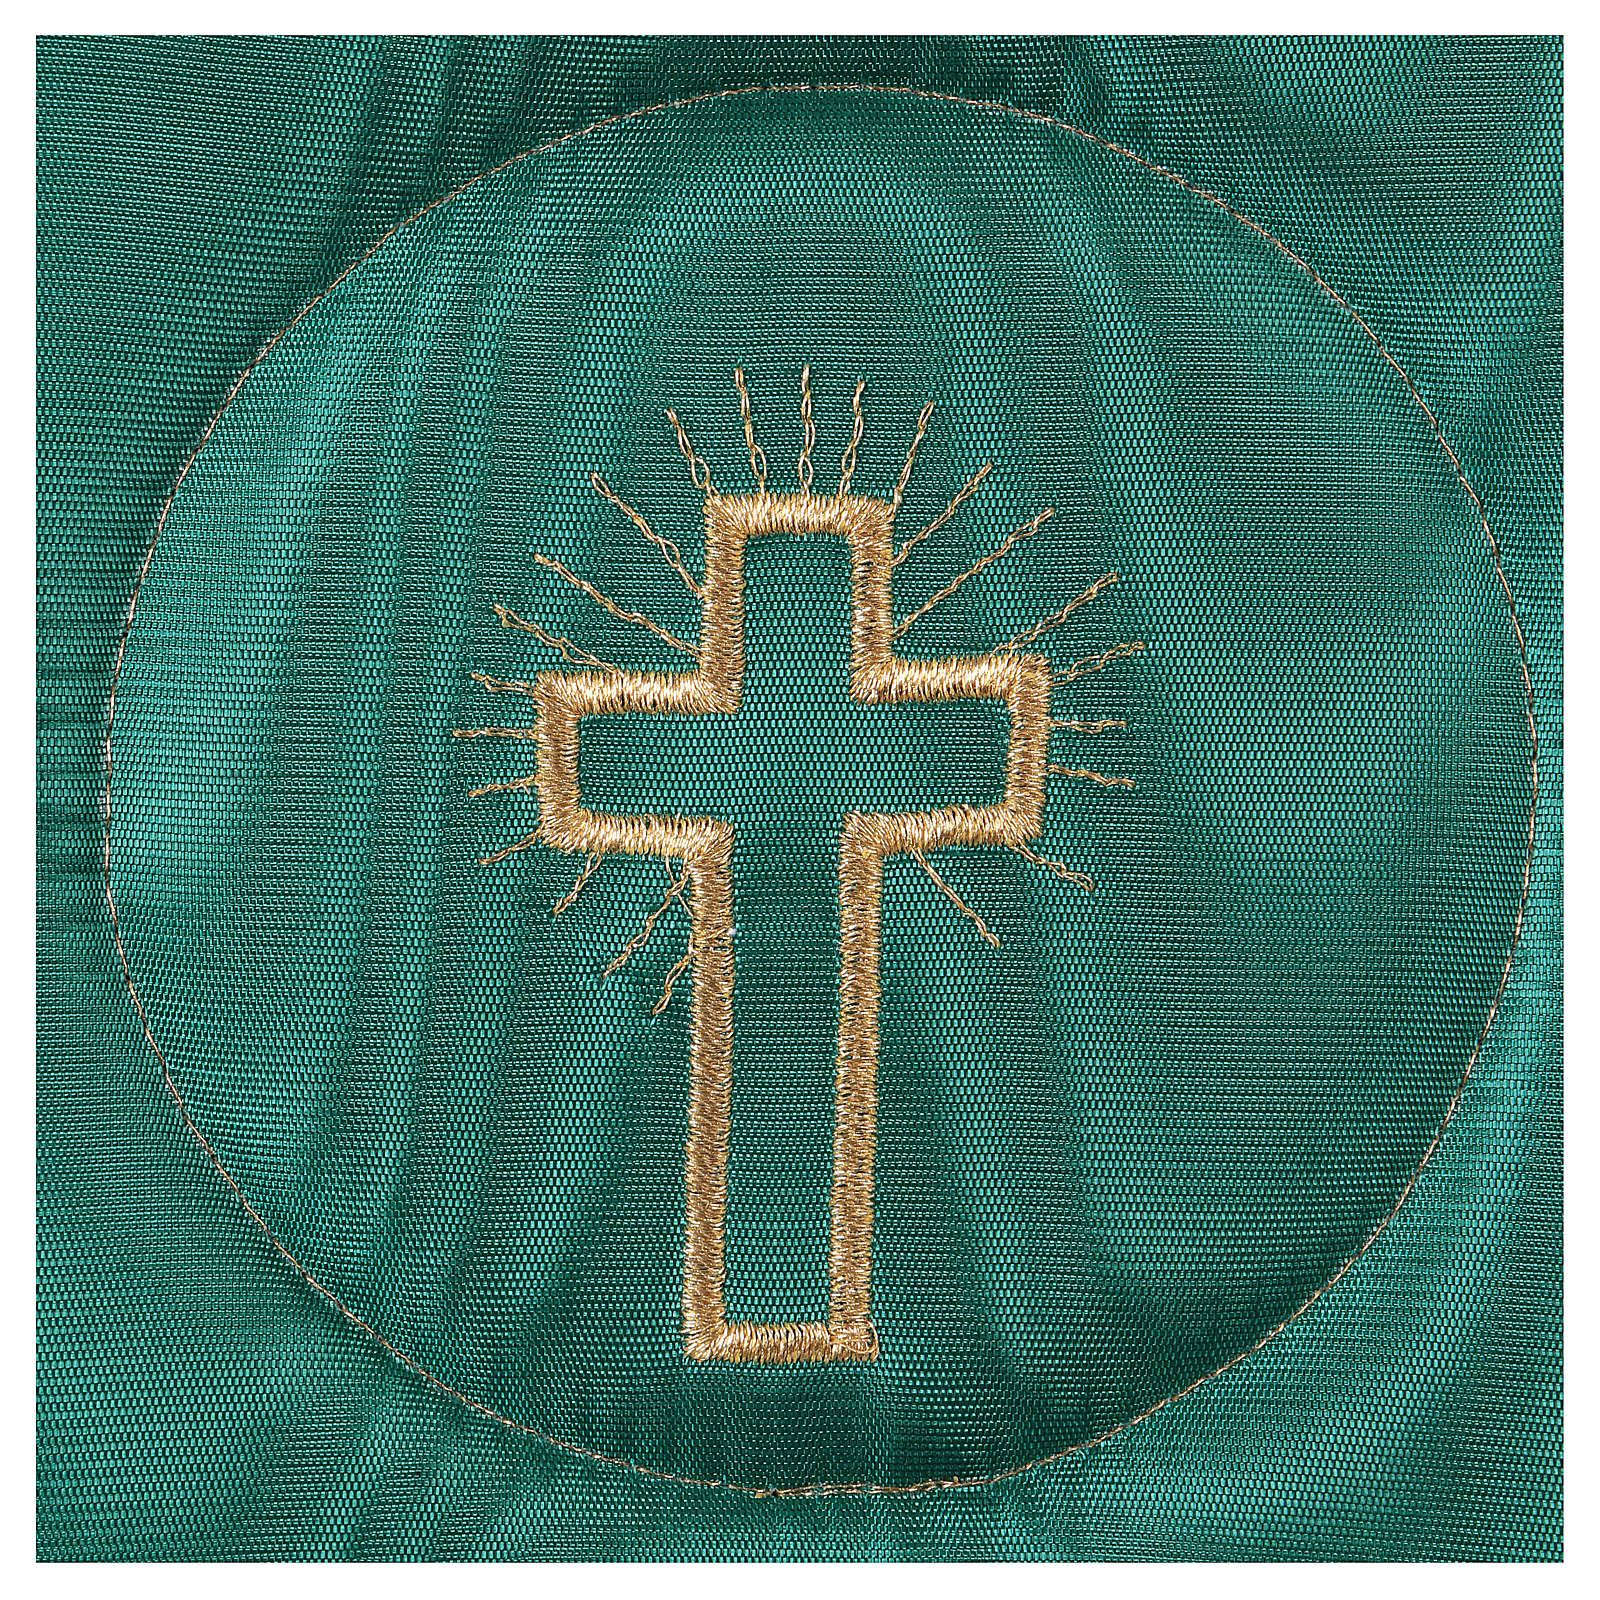 Chalice veil (pall) with cross embroidery on green brocade 4